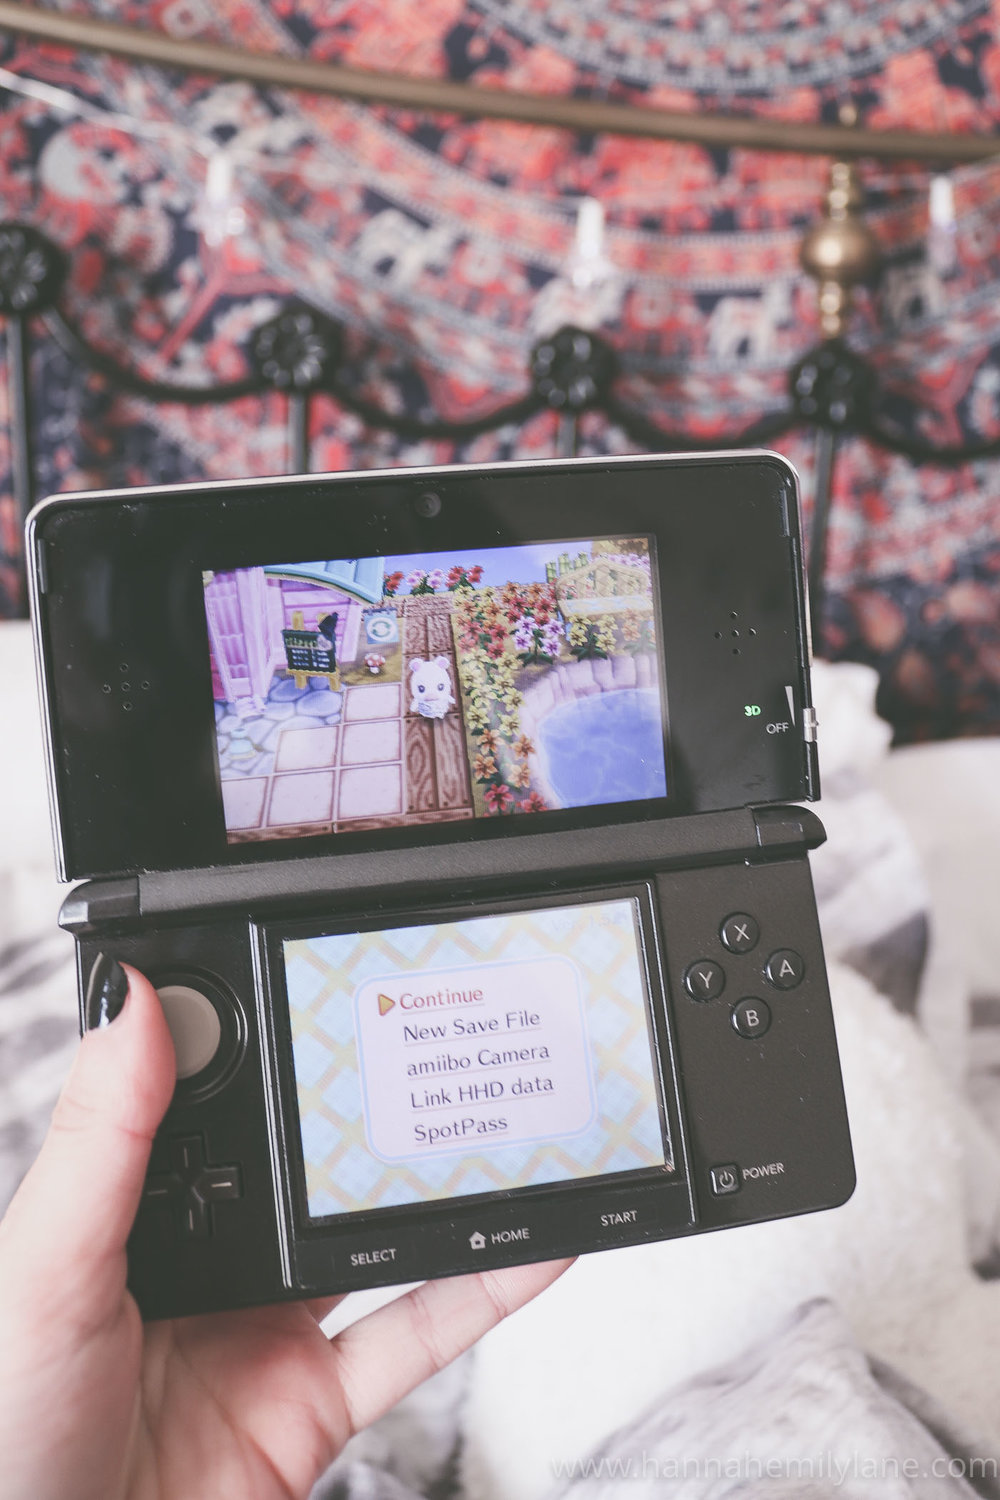 3. Animal crossing - Ok I've been loving the Animal Crossing series since like 2006? Since Wild World. Wow ok now I feel old.This has literally been my all time favourite game series, ever. I'm not a huge gamer but I've got a lot of time for this.Recently, Nintendo shocked us all with an announcement that Animal Crossing was coming to Switch in 2019. HECK YES.I mean, I don't own a Switch but obviously, I will be buying one before the game is released. If anyone sees any super deals hit me up...Since then though, I've picked up my New Leaf game again and been playing that a lot. I've fallen back in love with the magic of the game. I love the aesthetic, the relaxing music, the fact there is no story to follow and the game is so customisable, the cute animals who will always chat with you and the calming vibes.I'm a forever fan of this series and I am so impatiently waiting for a peek at the next game, a release date, and well, anything Nintendo will offer up.